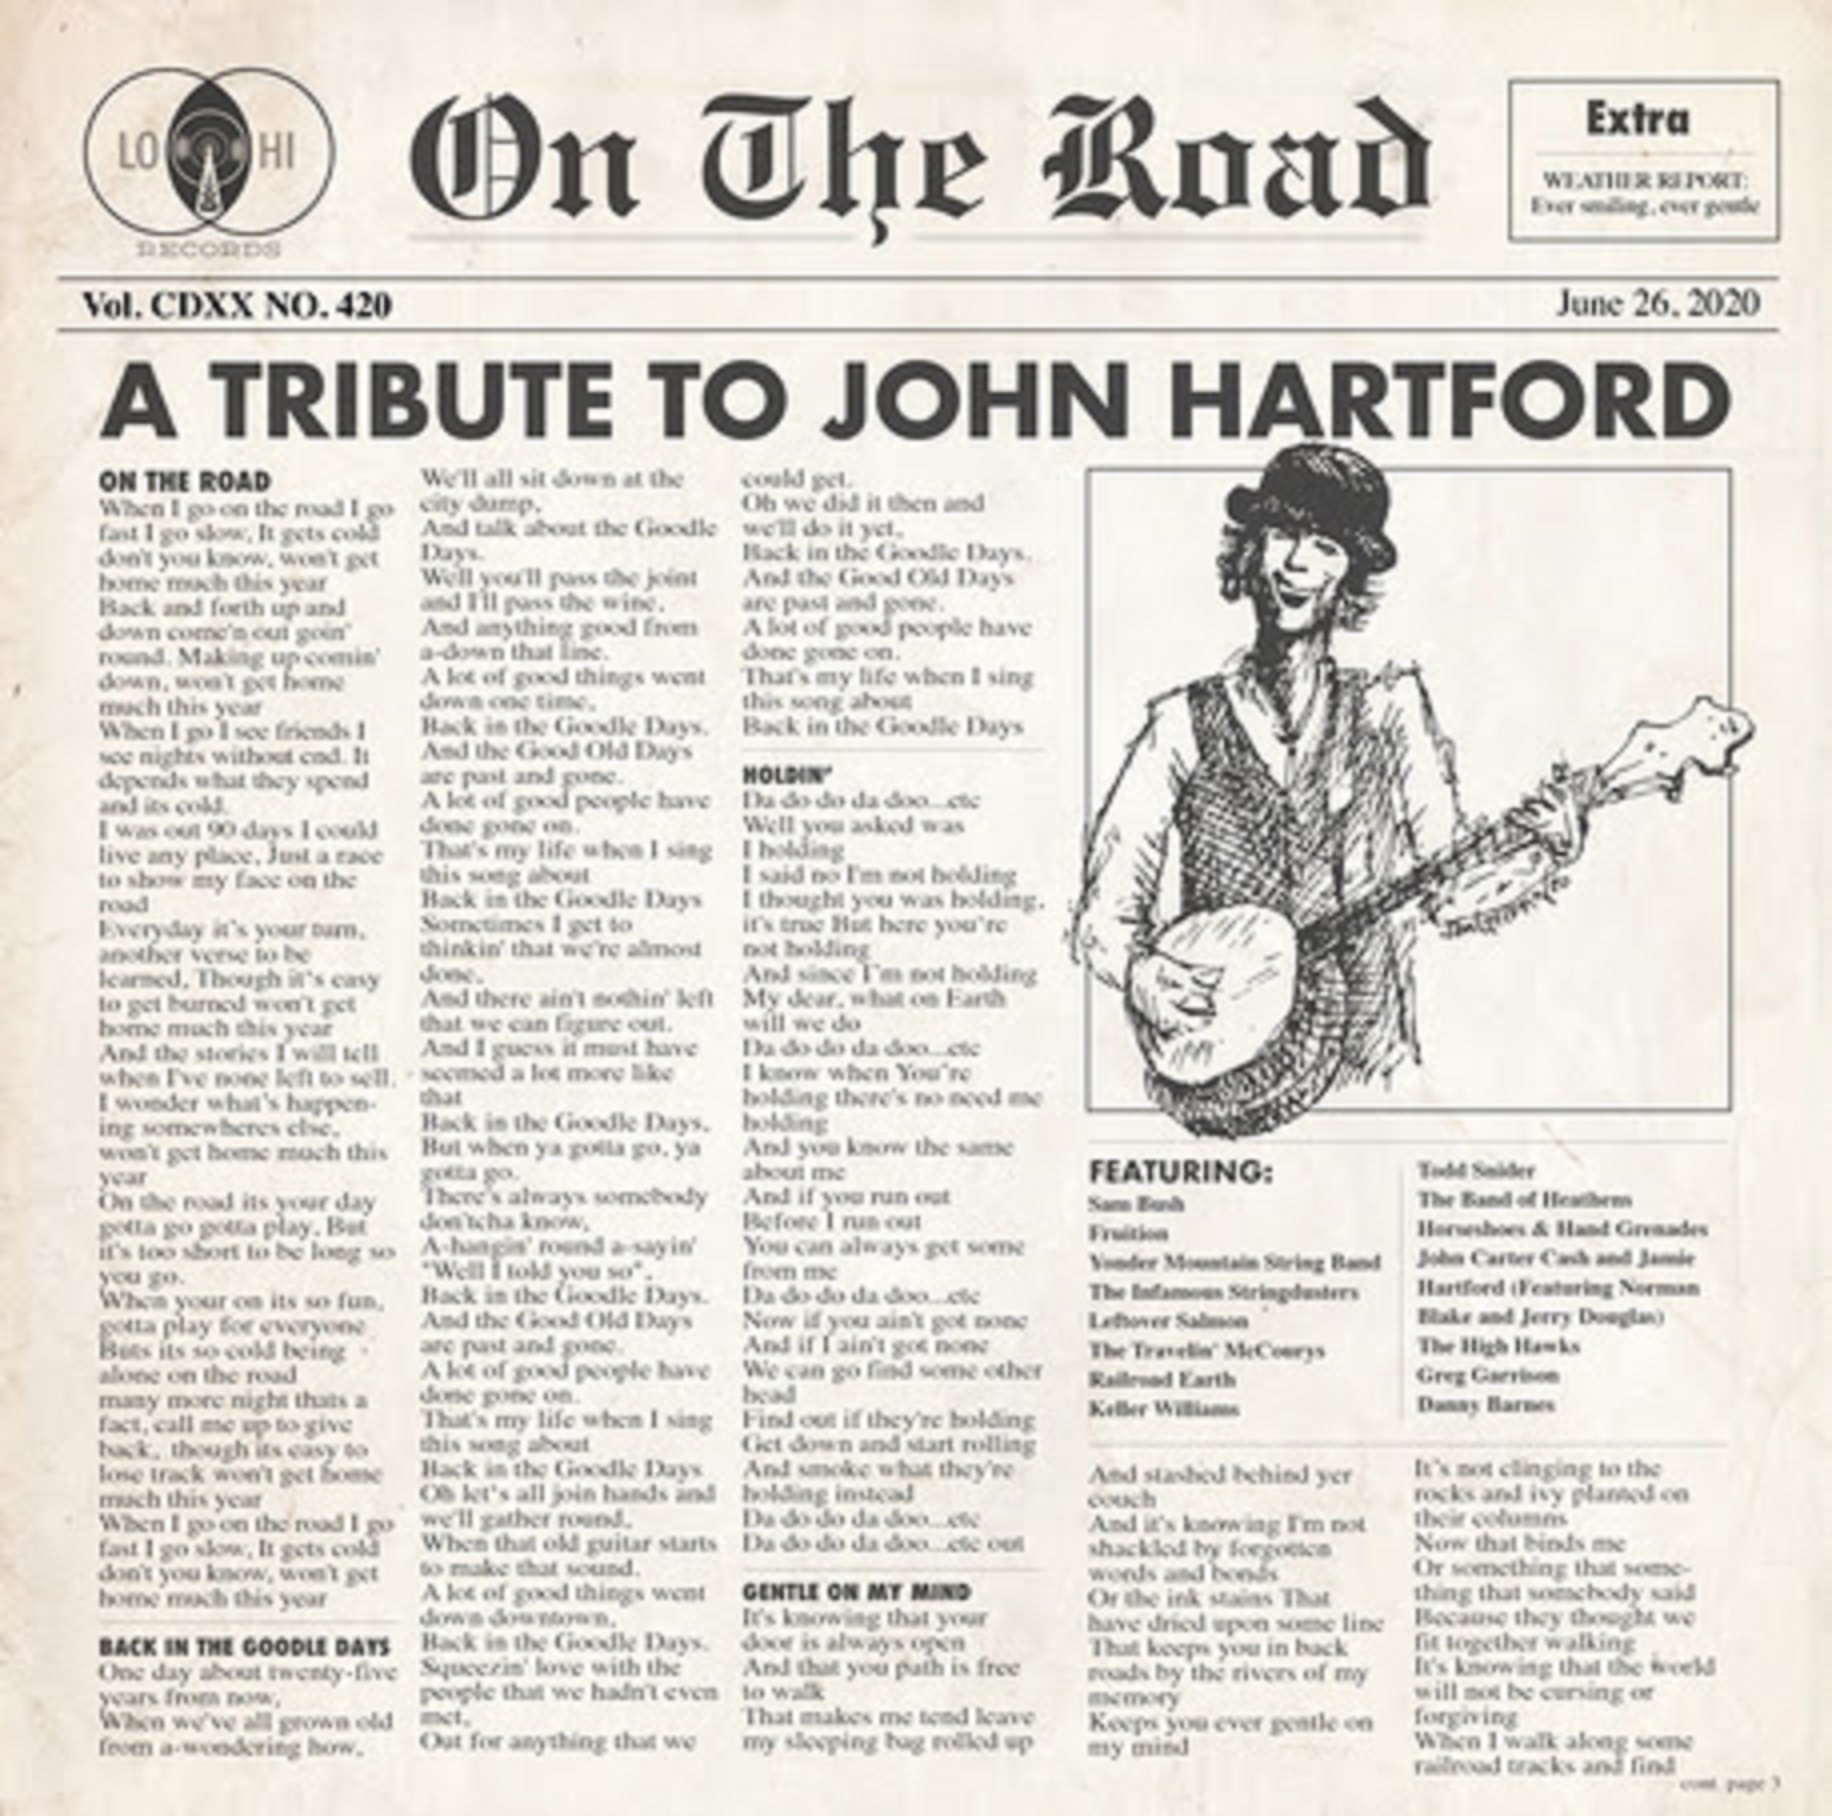 ON THE ROAD: A TRIBUTE TO JOHN HARTFORD to Benefit MusiCares - Out June 26th